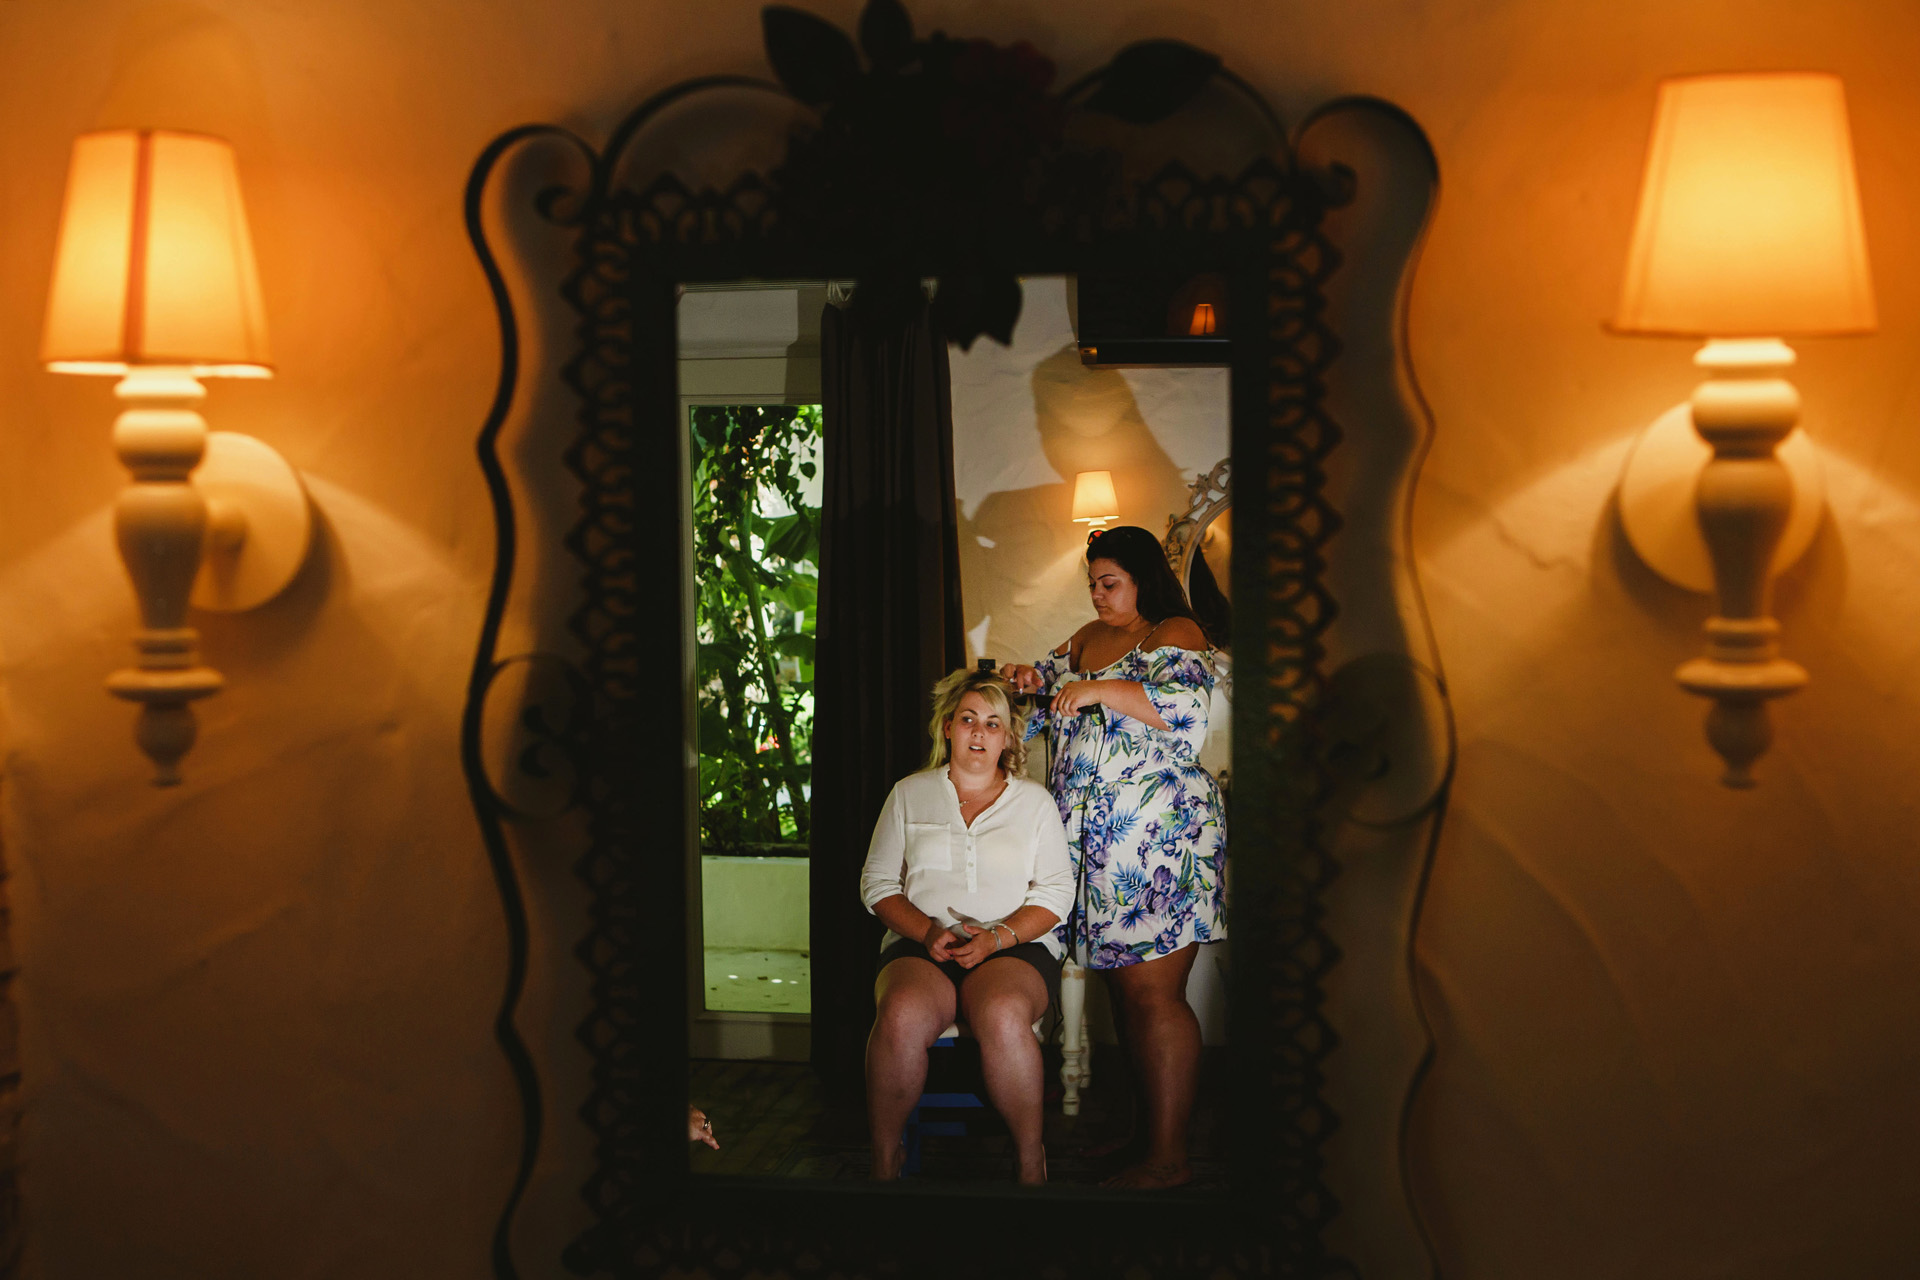 Oludeniz, Fethiye, Turkey Elopement and Wedding Photos | The balconies of the rooms and its garden resembling a tropical forest are really extraordinary